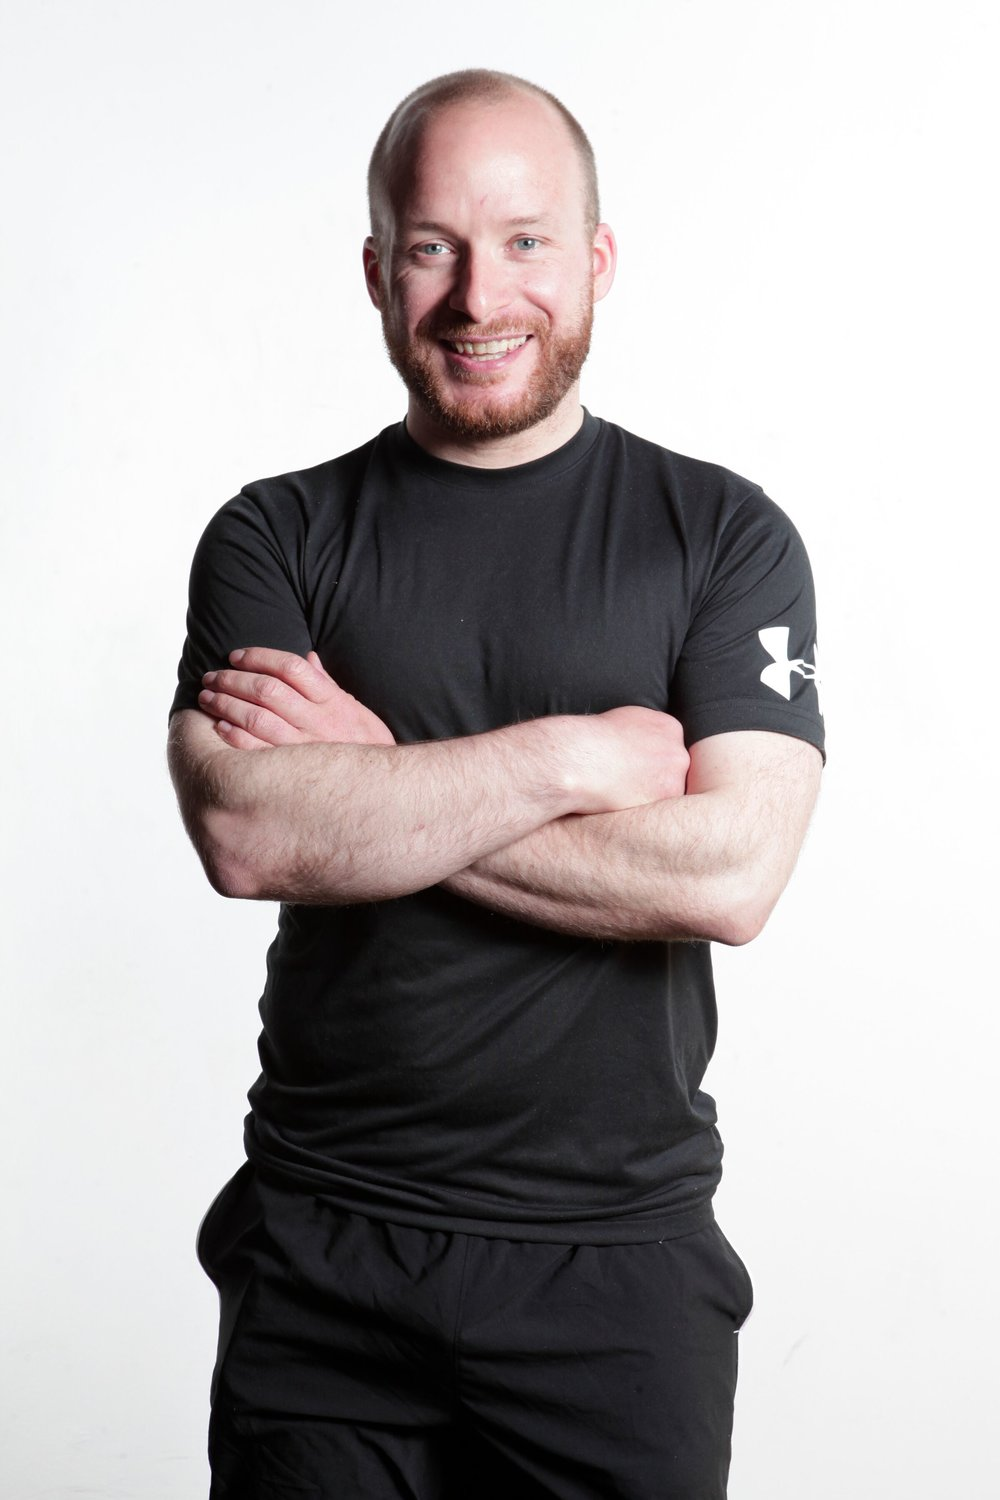 Joe Valente - having been through the fitness journey, by starting training in classes back in 2011, joe is another person that has come through the fit studios system and now helps people week in, week out achieve their fitness goals. one of joes top tips is to just get moving. eqf level 4 personal trainer and hosts the famous sunday circuits.